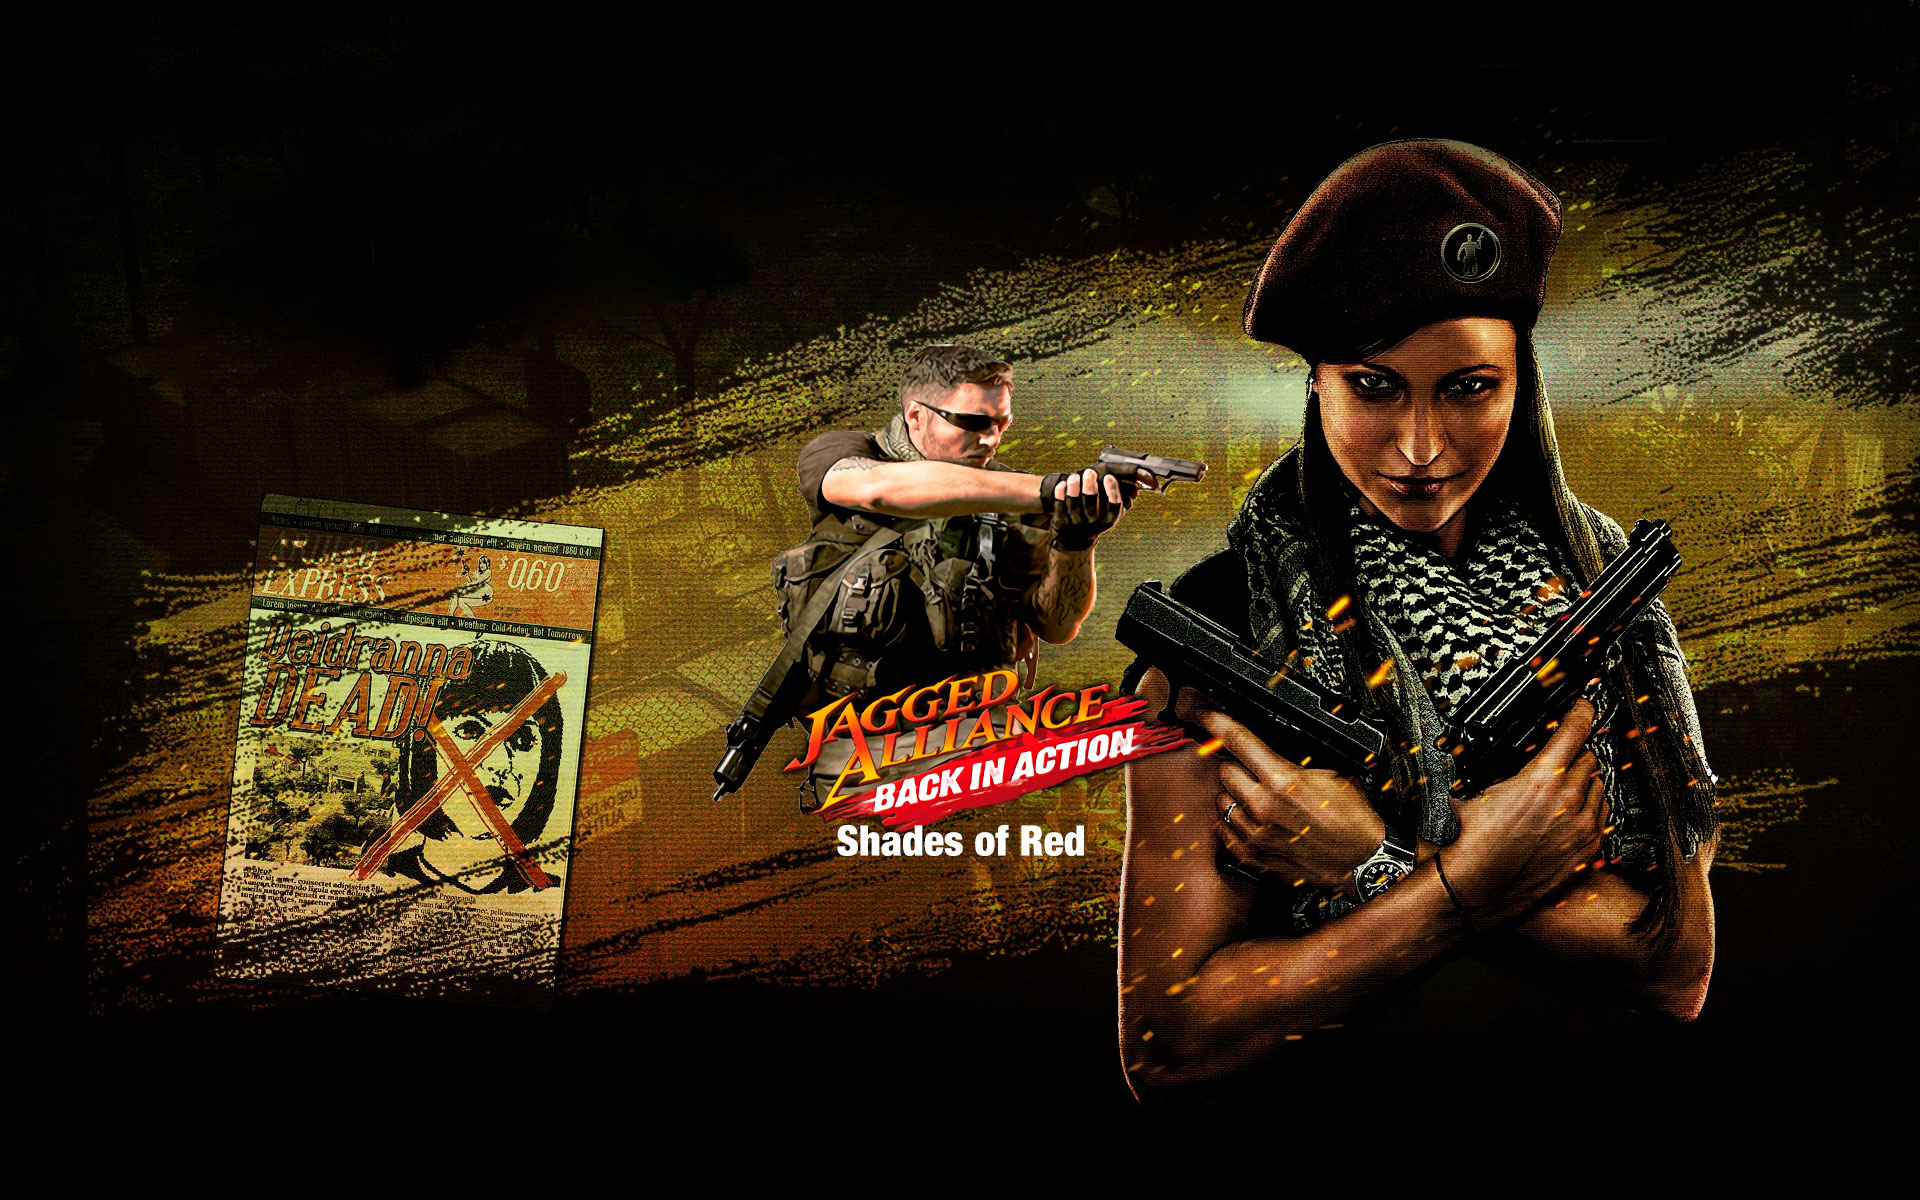 Jagged Alliance - Back In Action - Shades of Red (DLC 1)